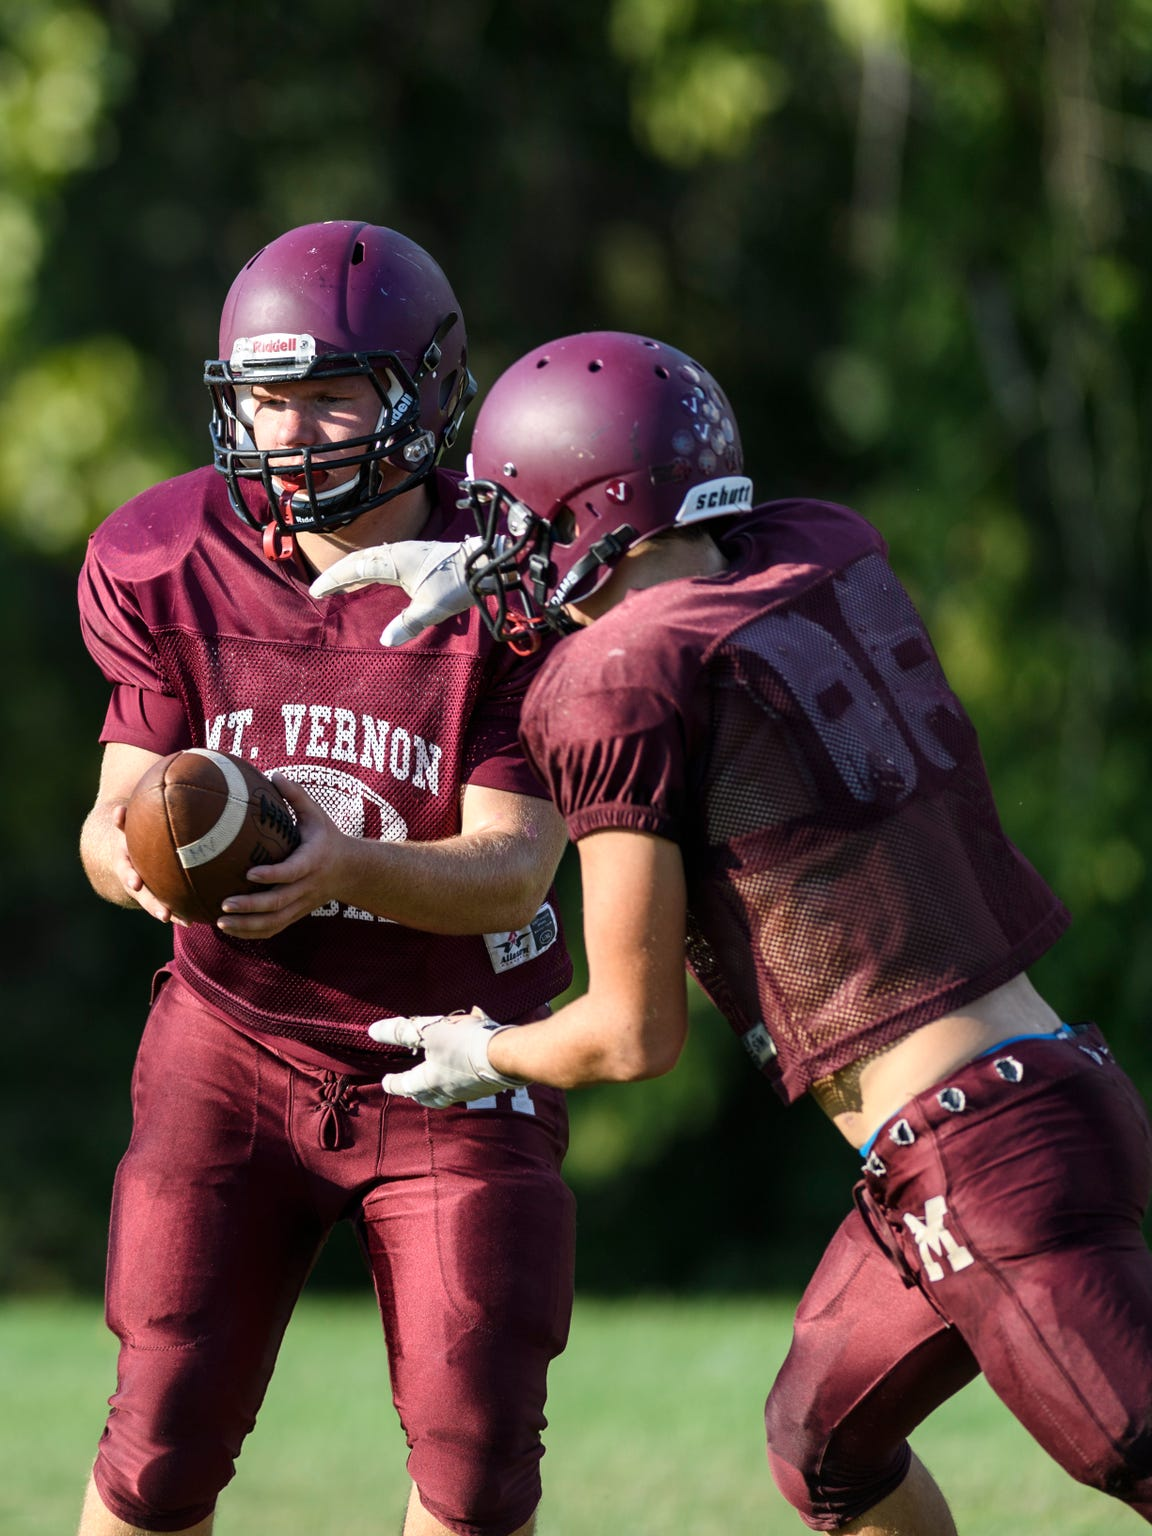 Mount Vernon Quarterback Rhett Snodgrass (7) makes a hand-off to teammate Sam Thomas (12) during an after school football practice at Mount Vernon High School in Mount Vernon, Ind., Tuesday, Sept. 18, 2018.